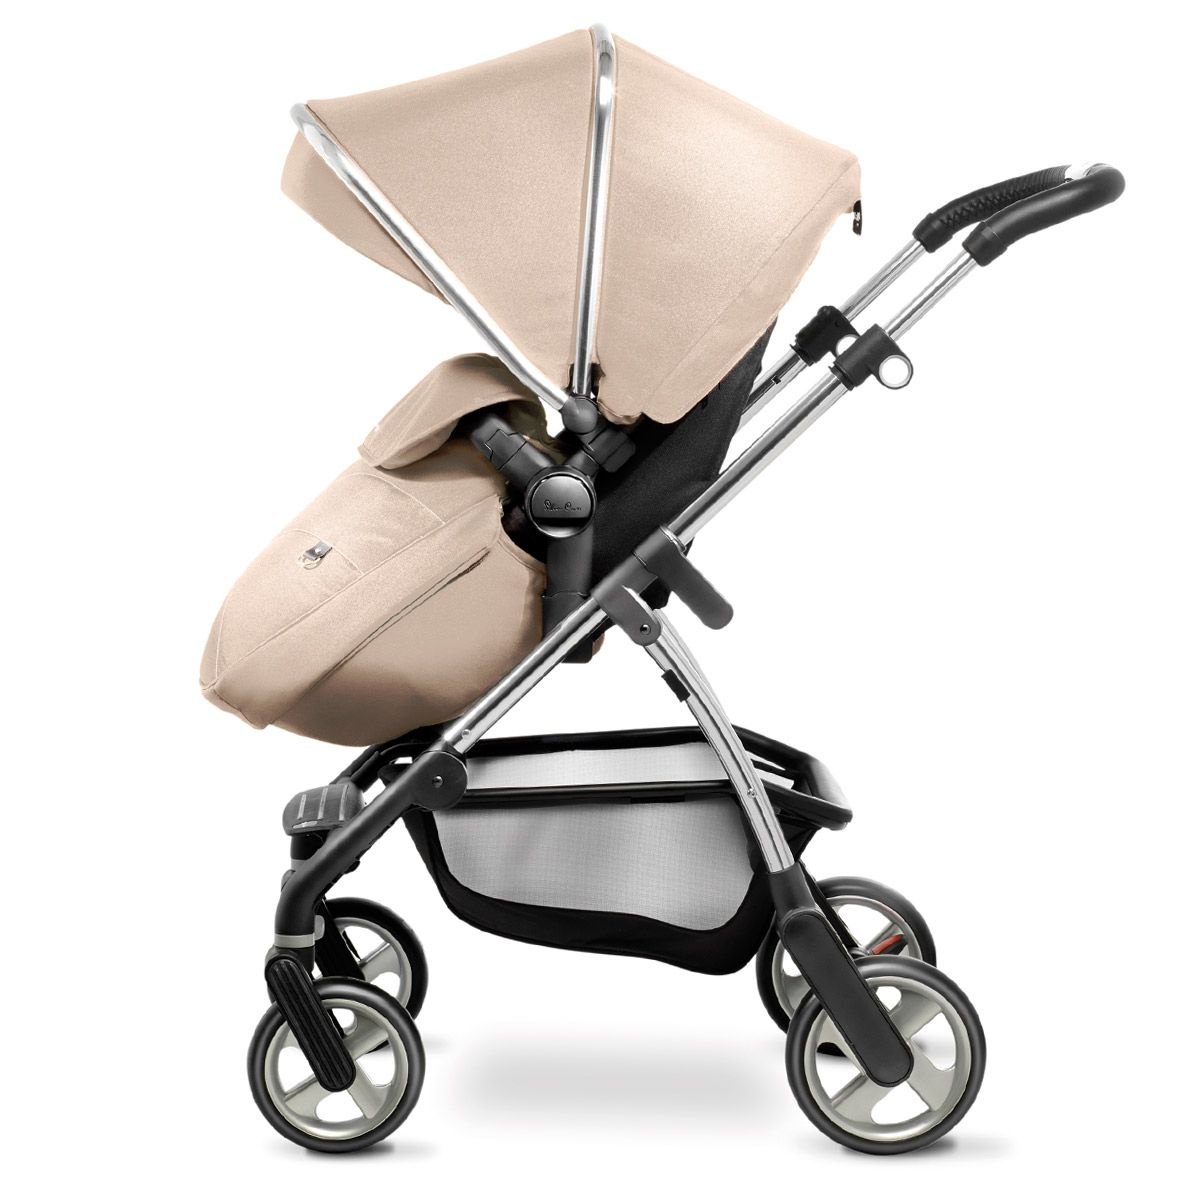 SAND Designs Reversible Seat Liners for Silver Cross Wayfarer Pushchairs